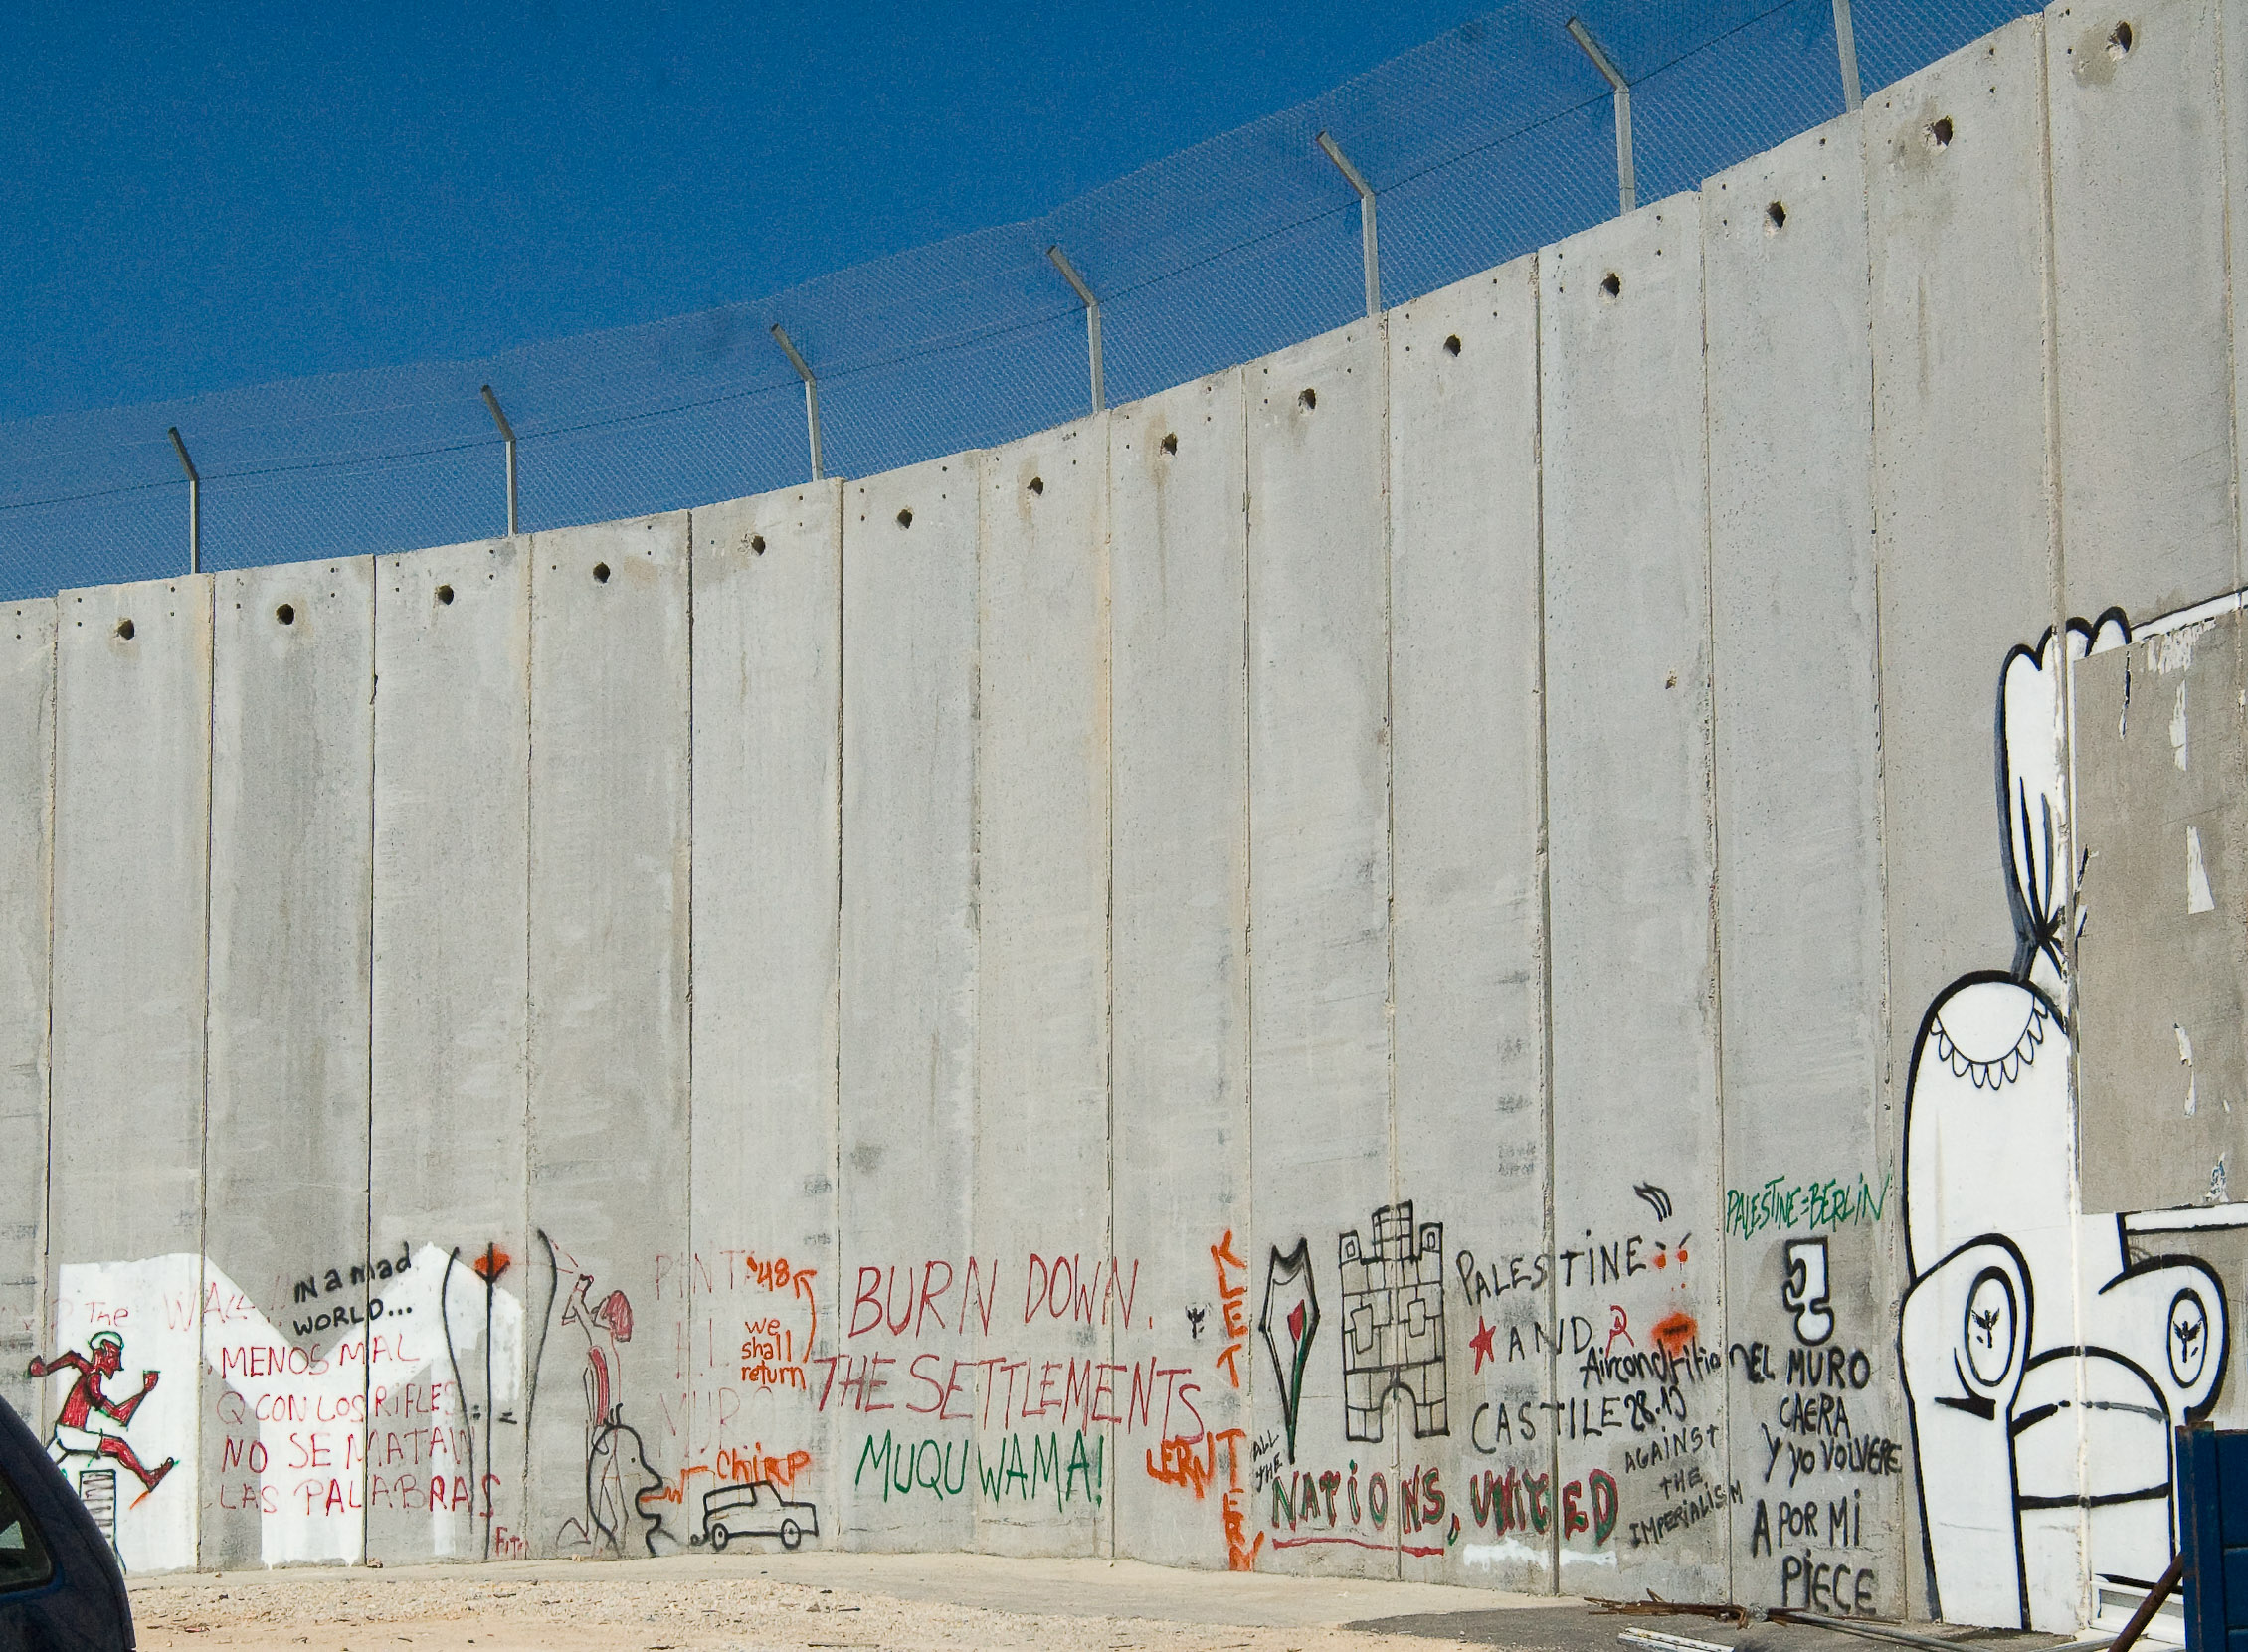 Marcus Miller: Indigenous peoples aren't the same as Palestinians